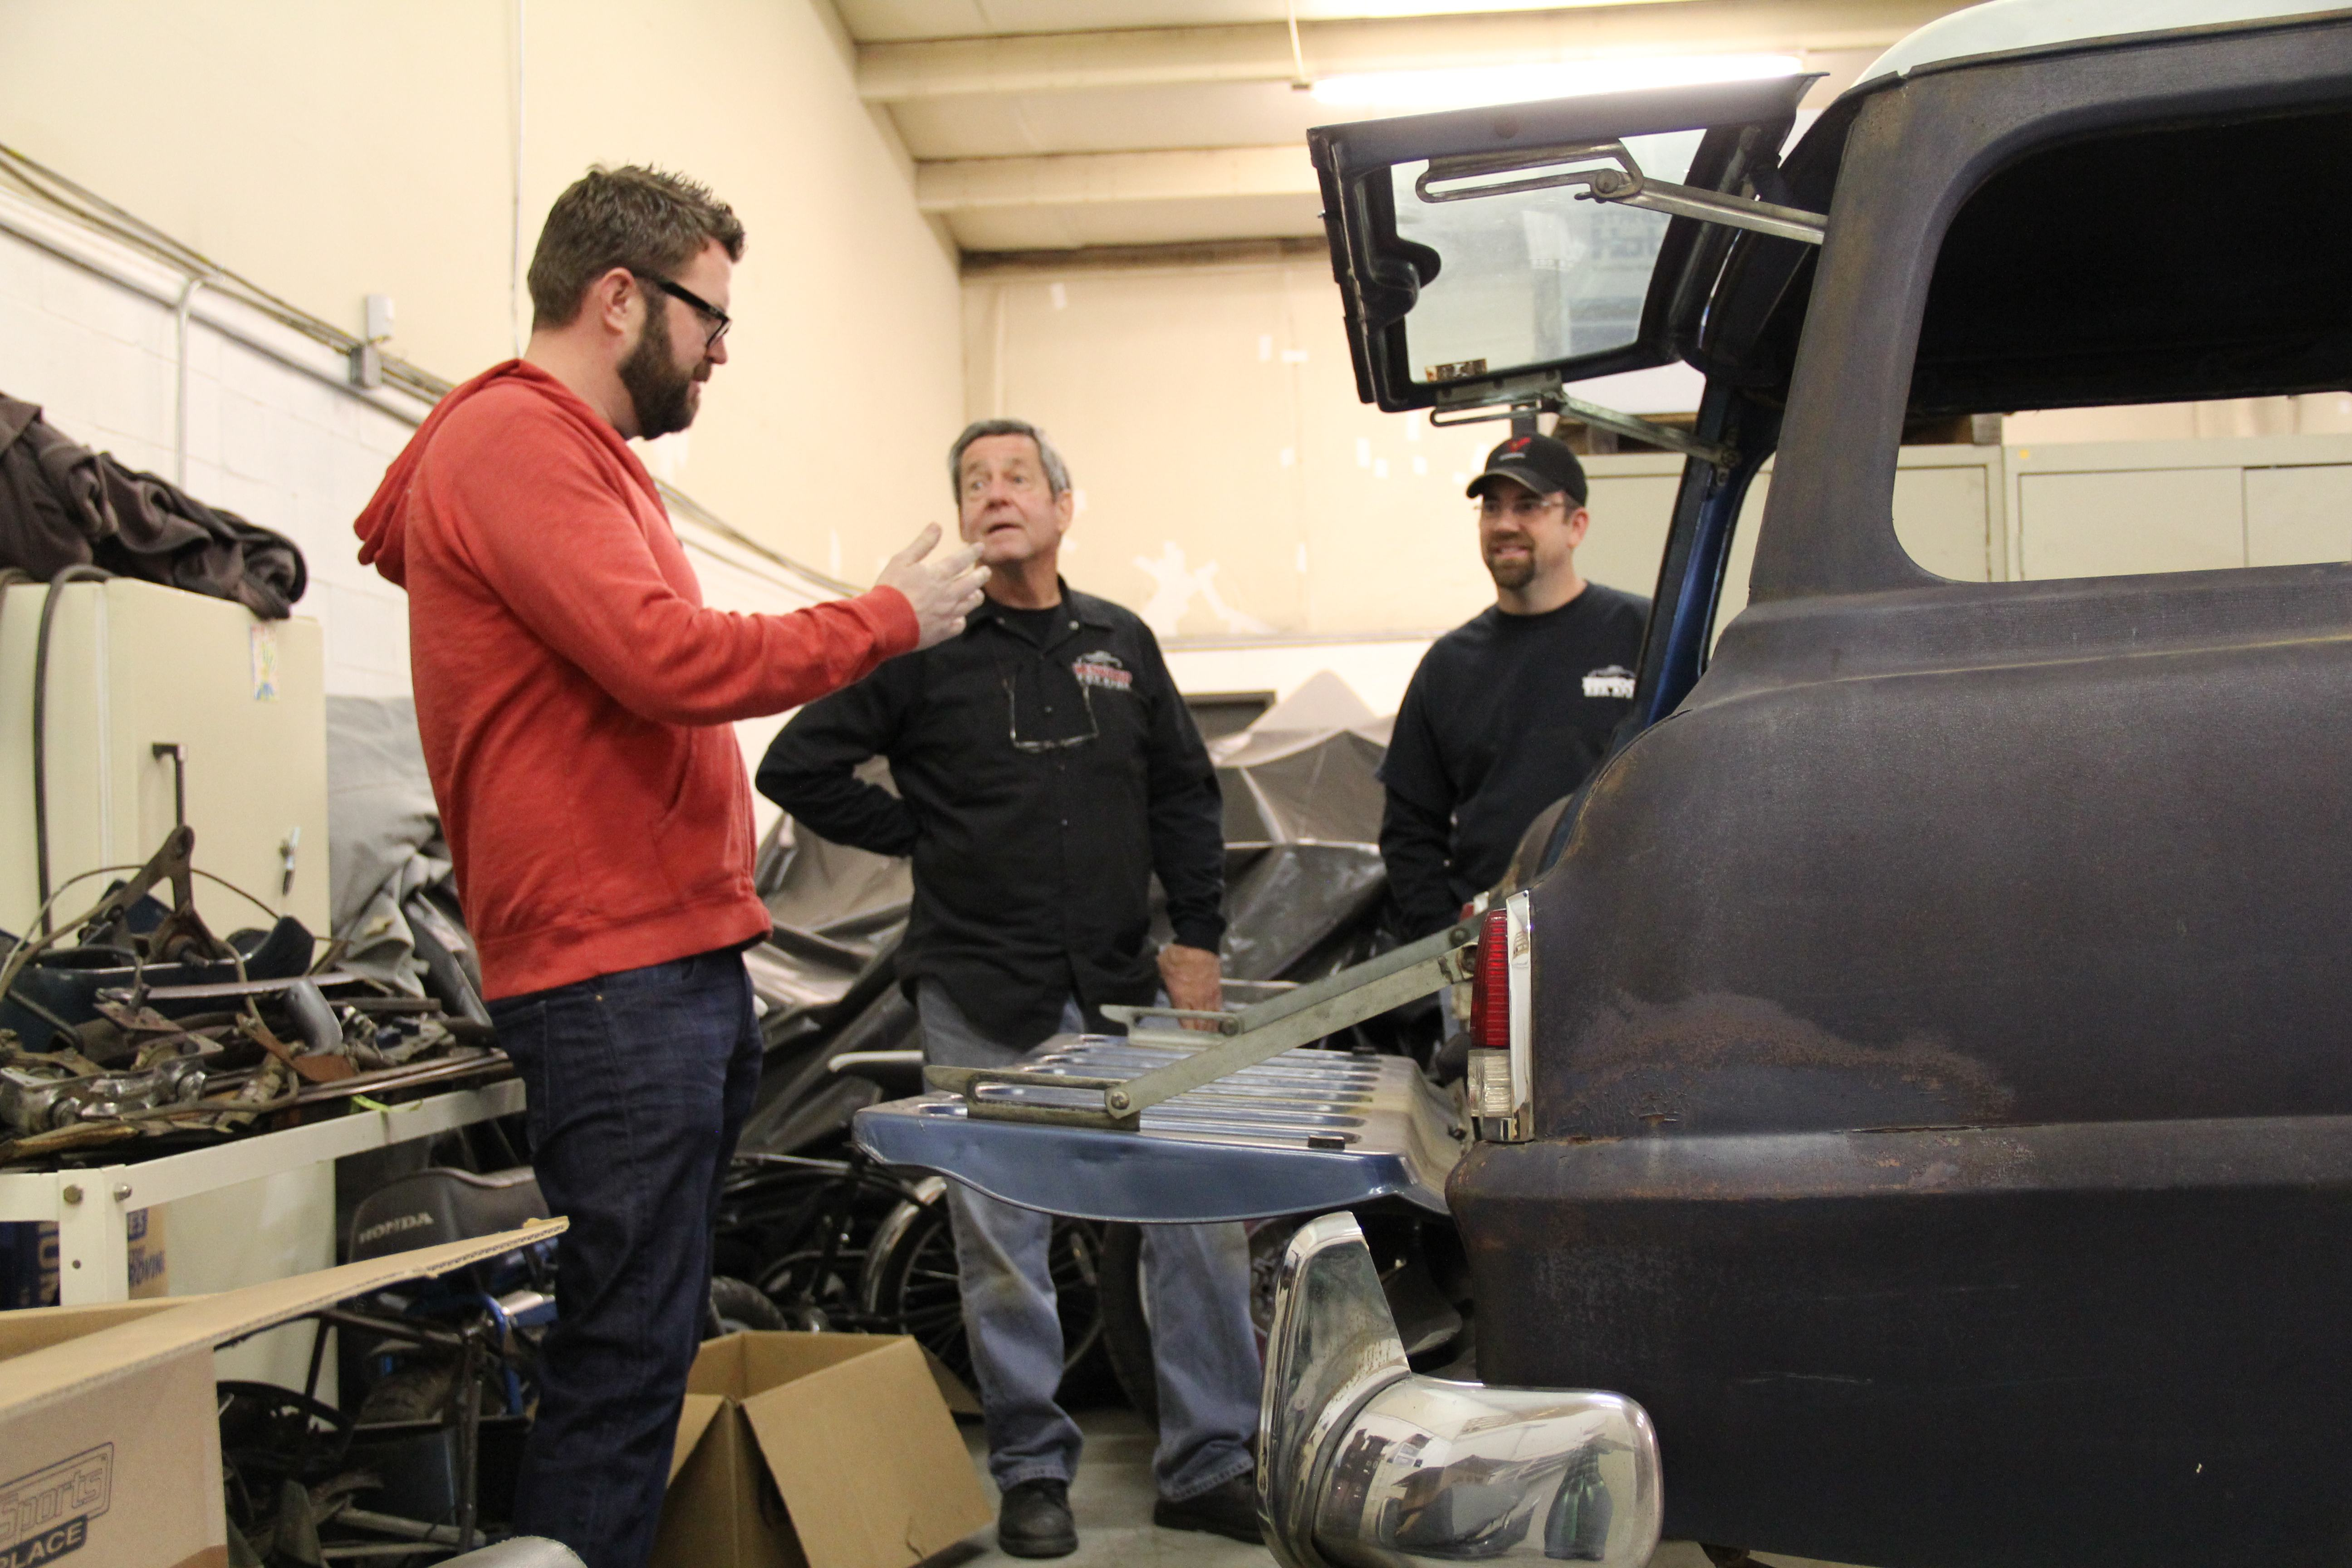 Progress Continues On The Summit Racing Rutledge Wood 1953 Plymouth 1949 Chevy Step Van And Randy Allgood Discuss Plans For Rutledges Suburban Project